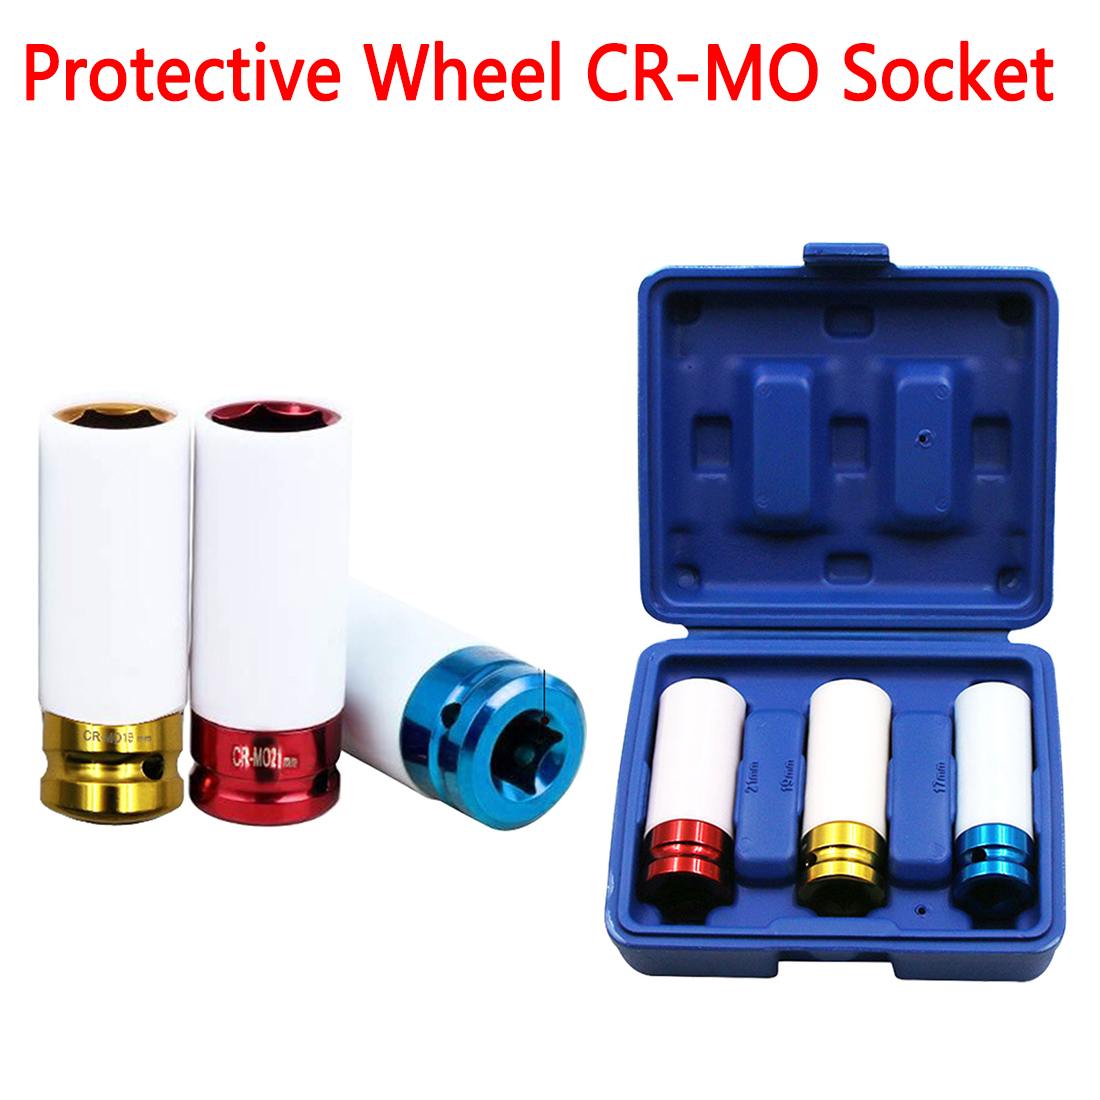 3pcs 17/19/21mm Pneumatic Tyre Protection Sleeve Colorful Steam Sleeve Auto Repair Hardware Tool + Case